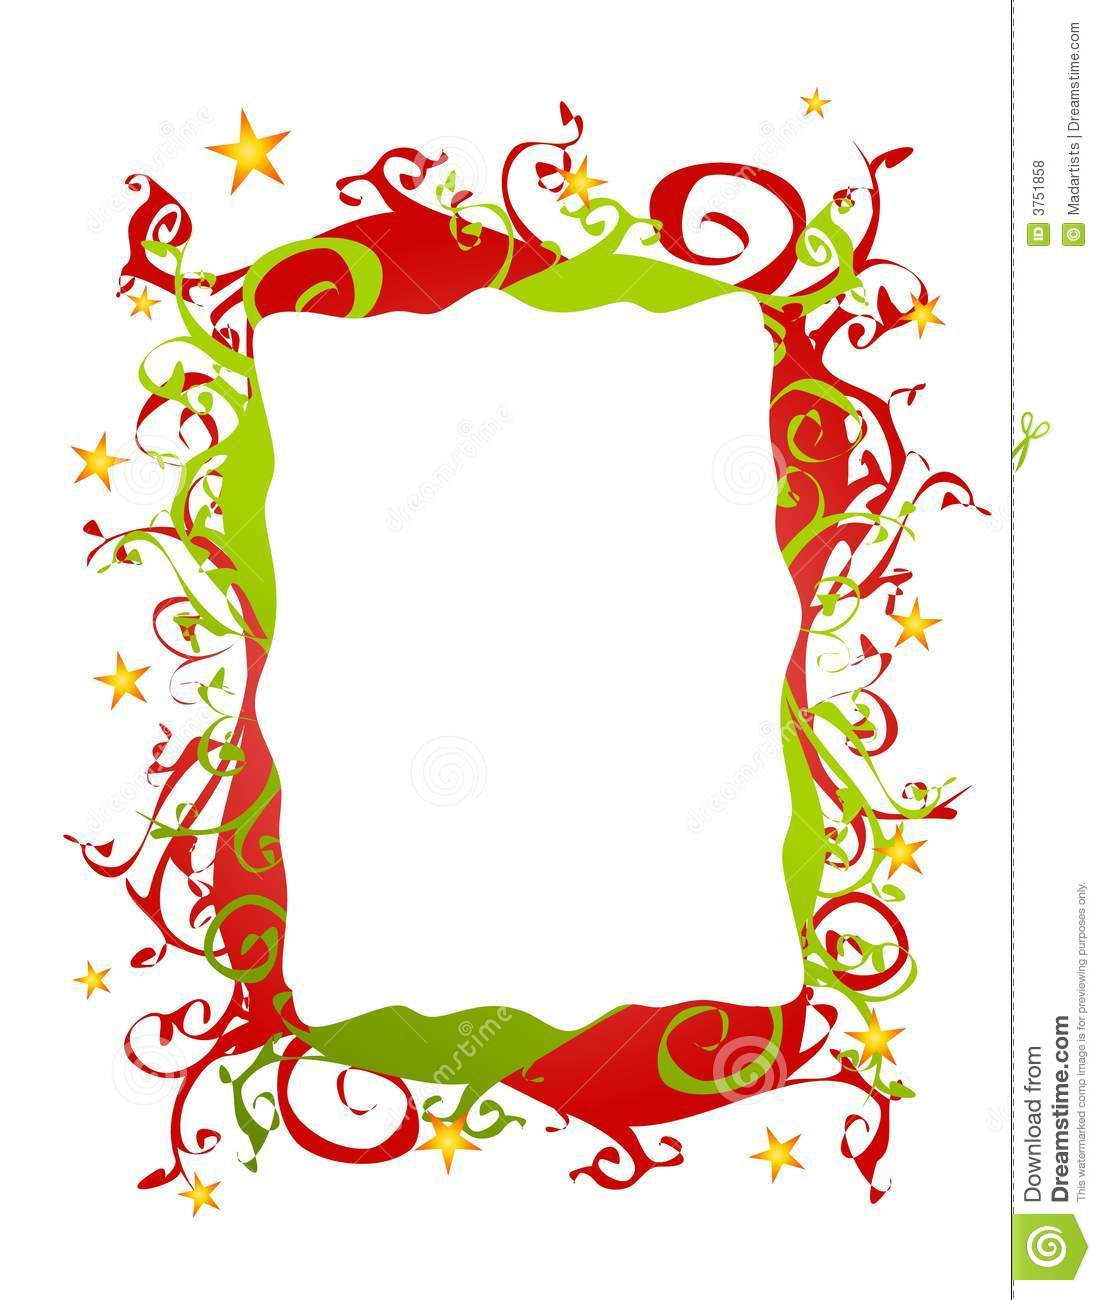 Christmas borders free download vector freeuse Christmas Border Clip Art Free Download & Christmas Border Clip ... vector freeuse